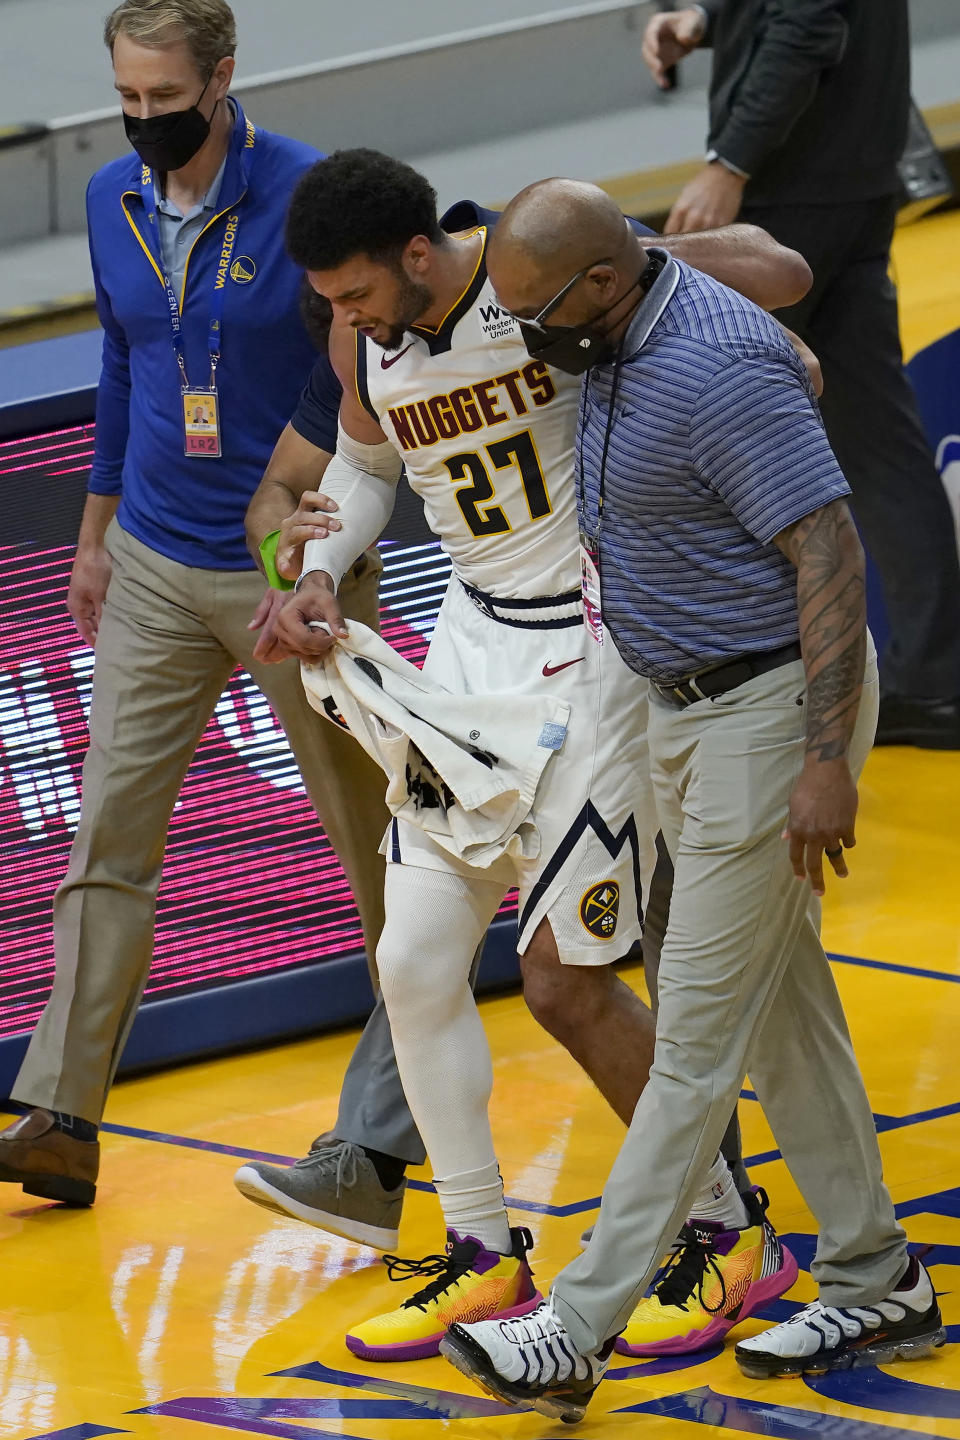 Denver Nuggets guard Jamal Murray (27) is helped off the floor during the second half of an NBA basketball game against the Golden State Warriors in San Francisco, Monday, April 12, 2021. (AP Photo/Jeff Chiu)